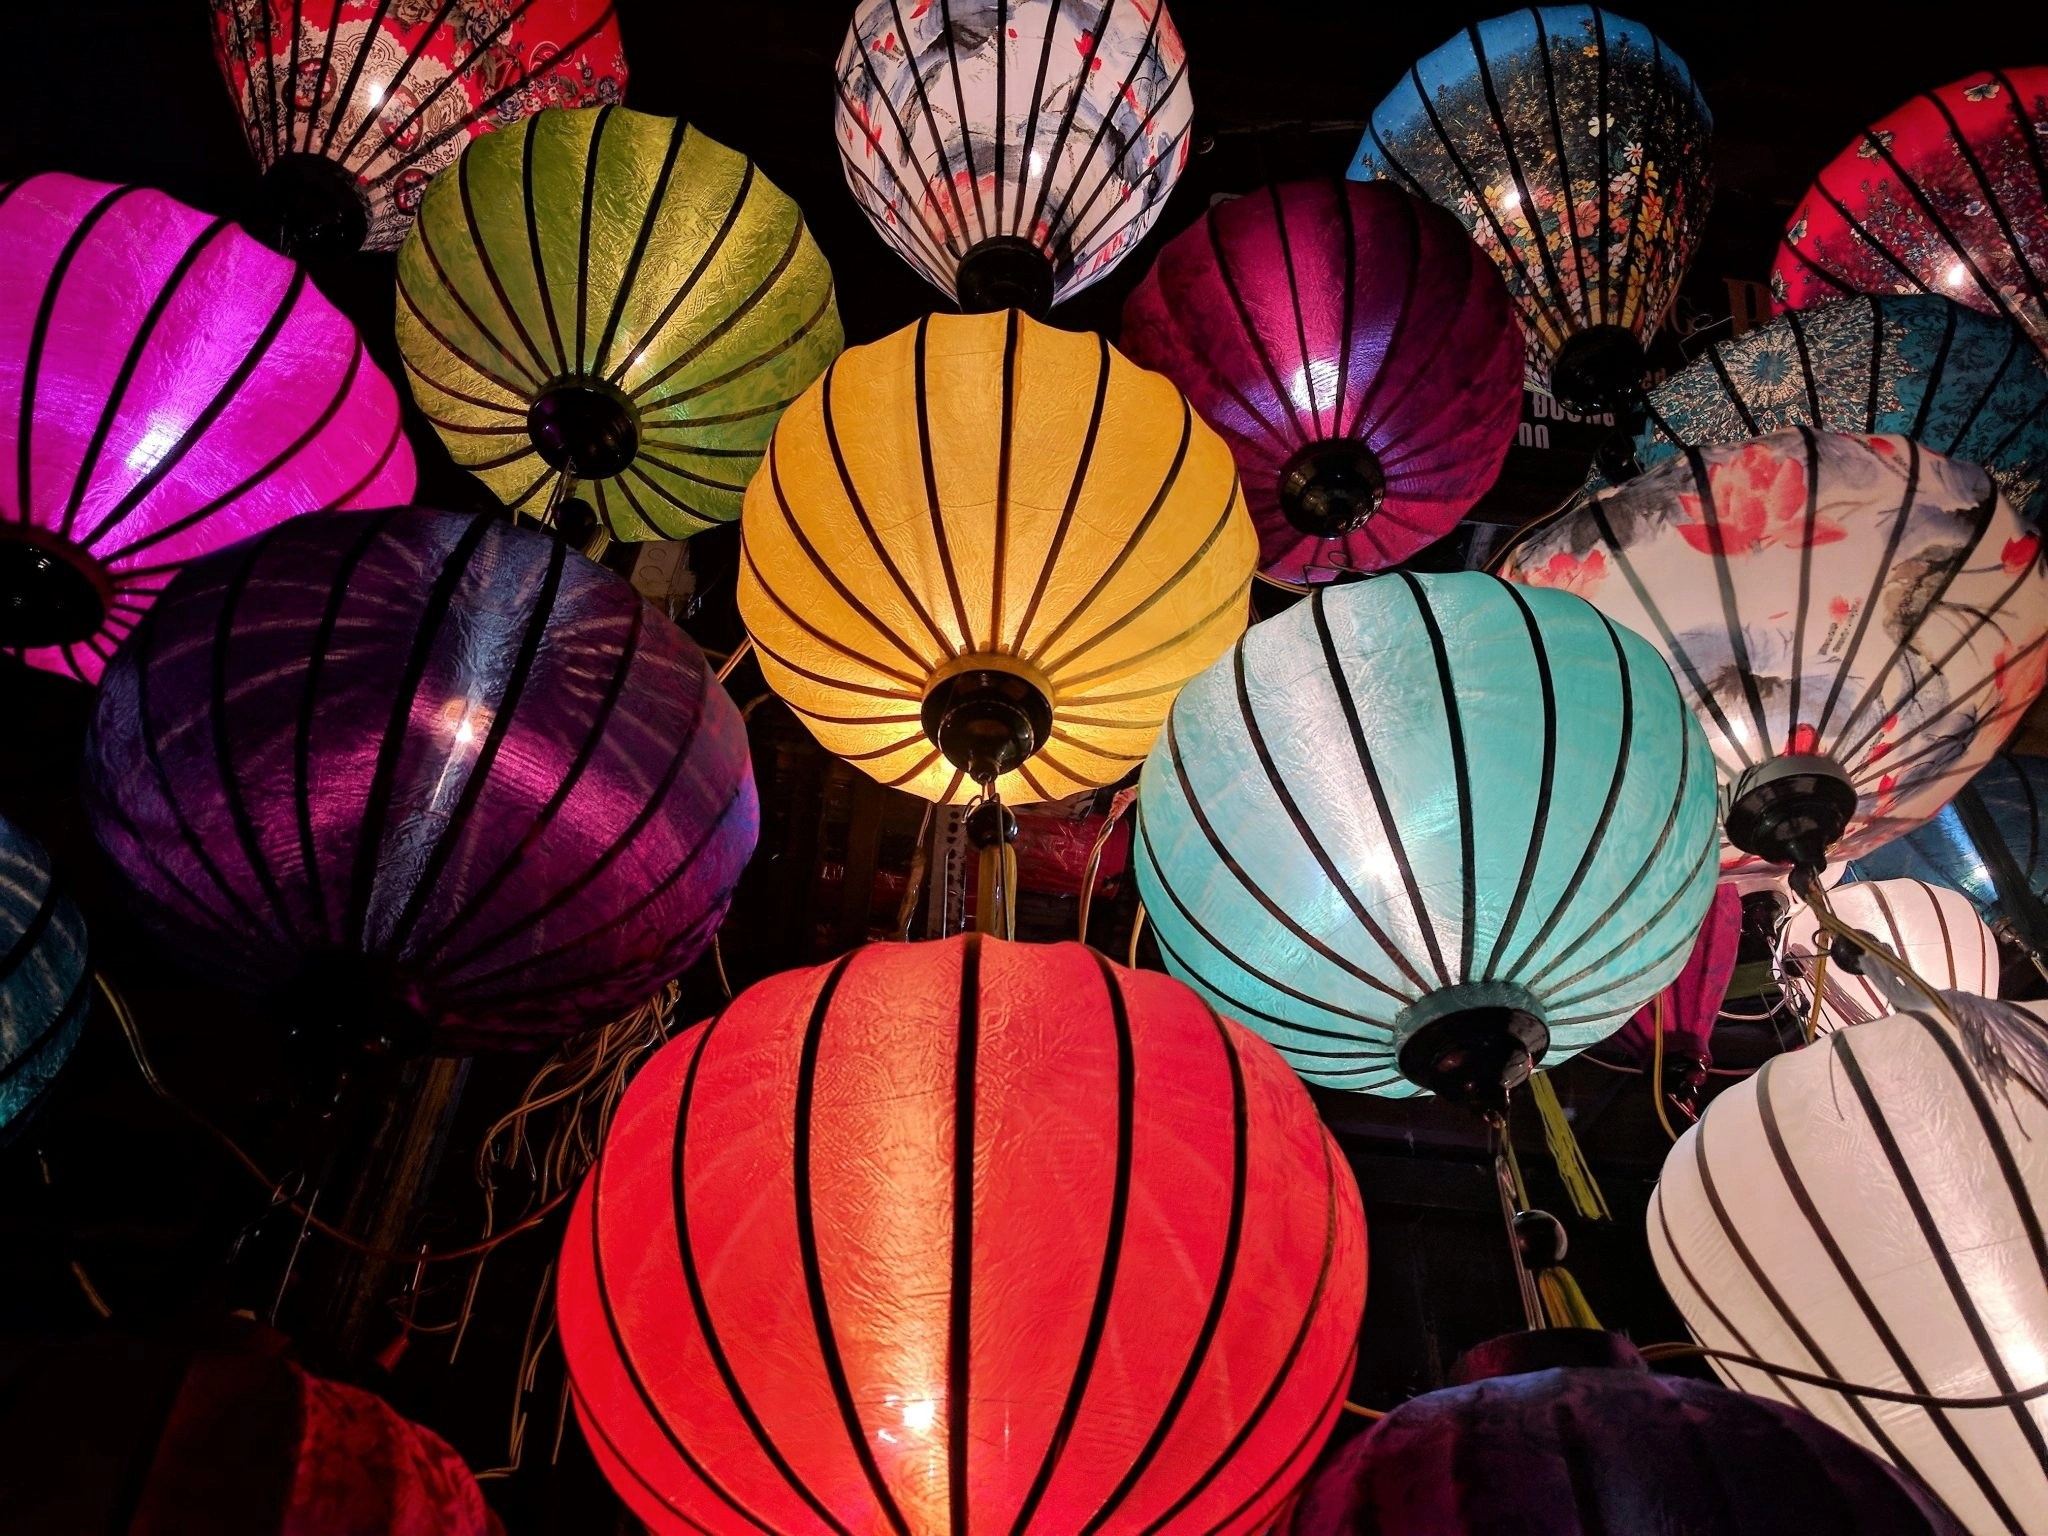 Over a dozen colorful Malaysia lanterns